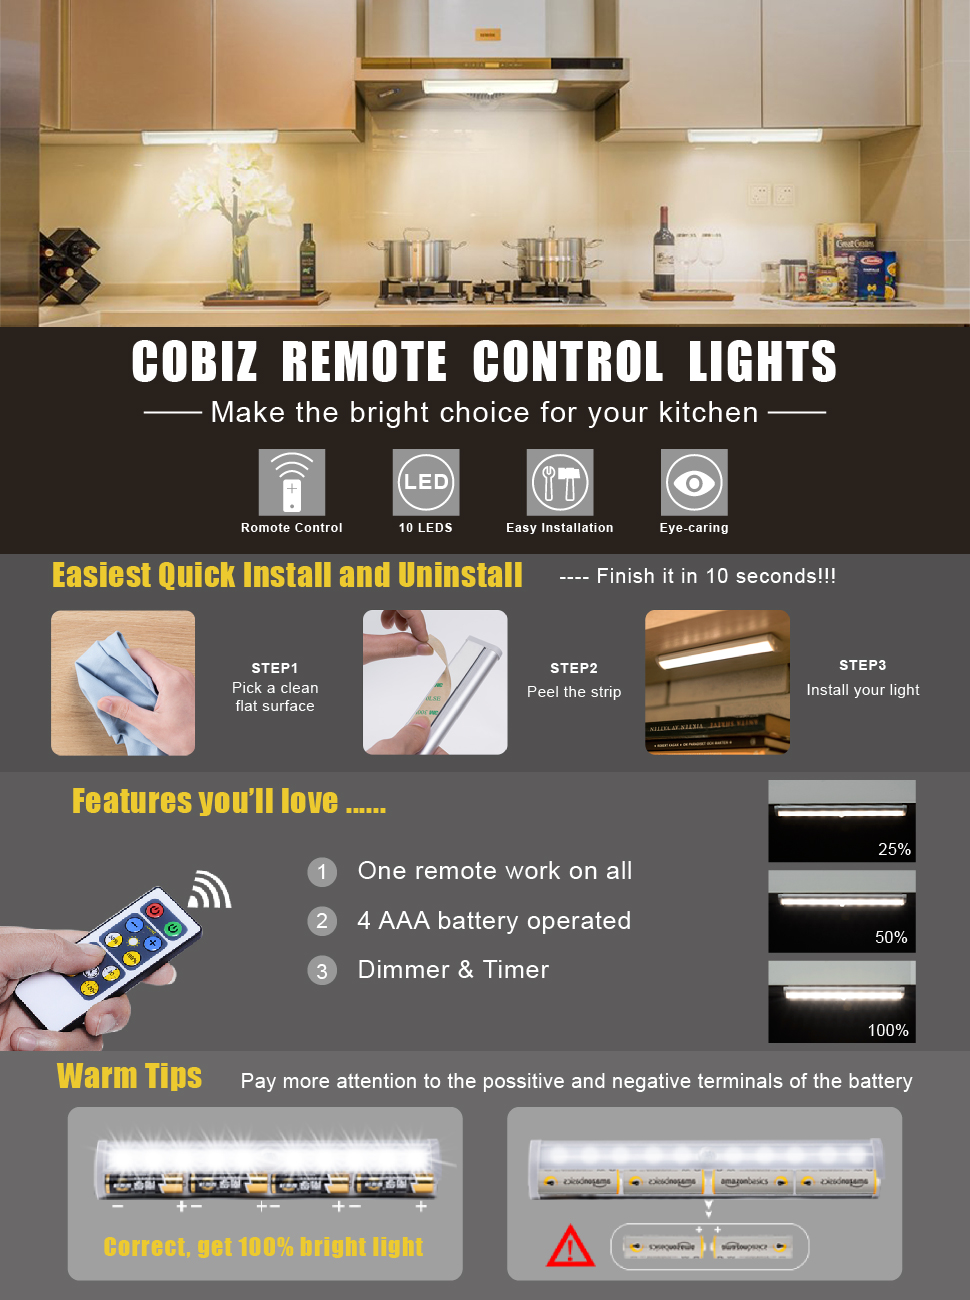 Make The Bright Choice When It Comes To Keeping Your Kitchen Visible This Easy To Install Easy To Customize Fixture From Cobiz Works As Under Counter